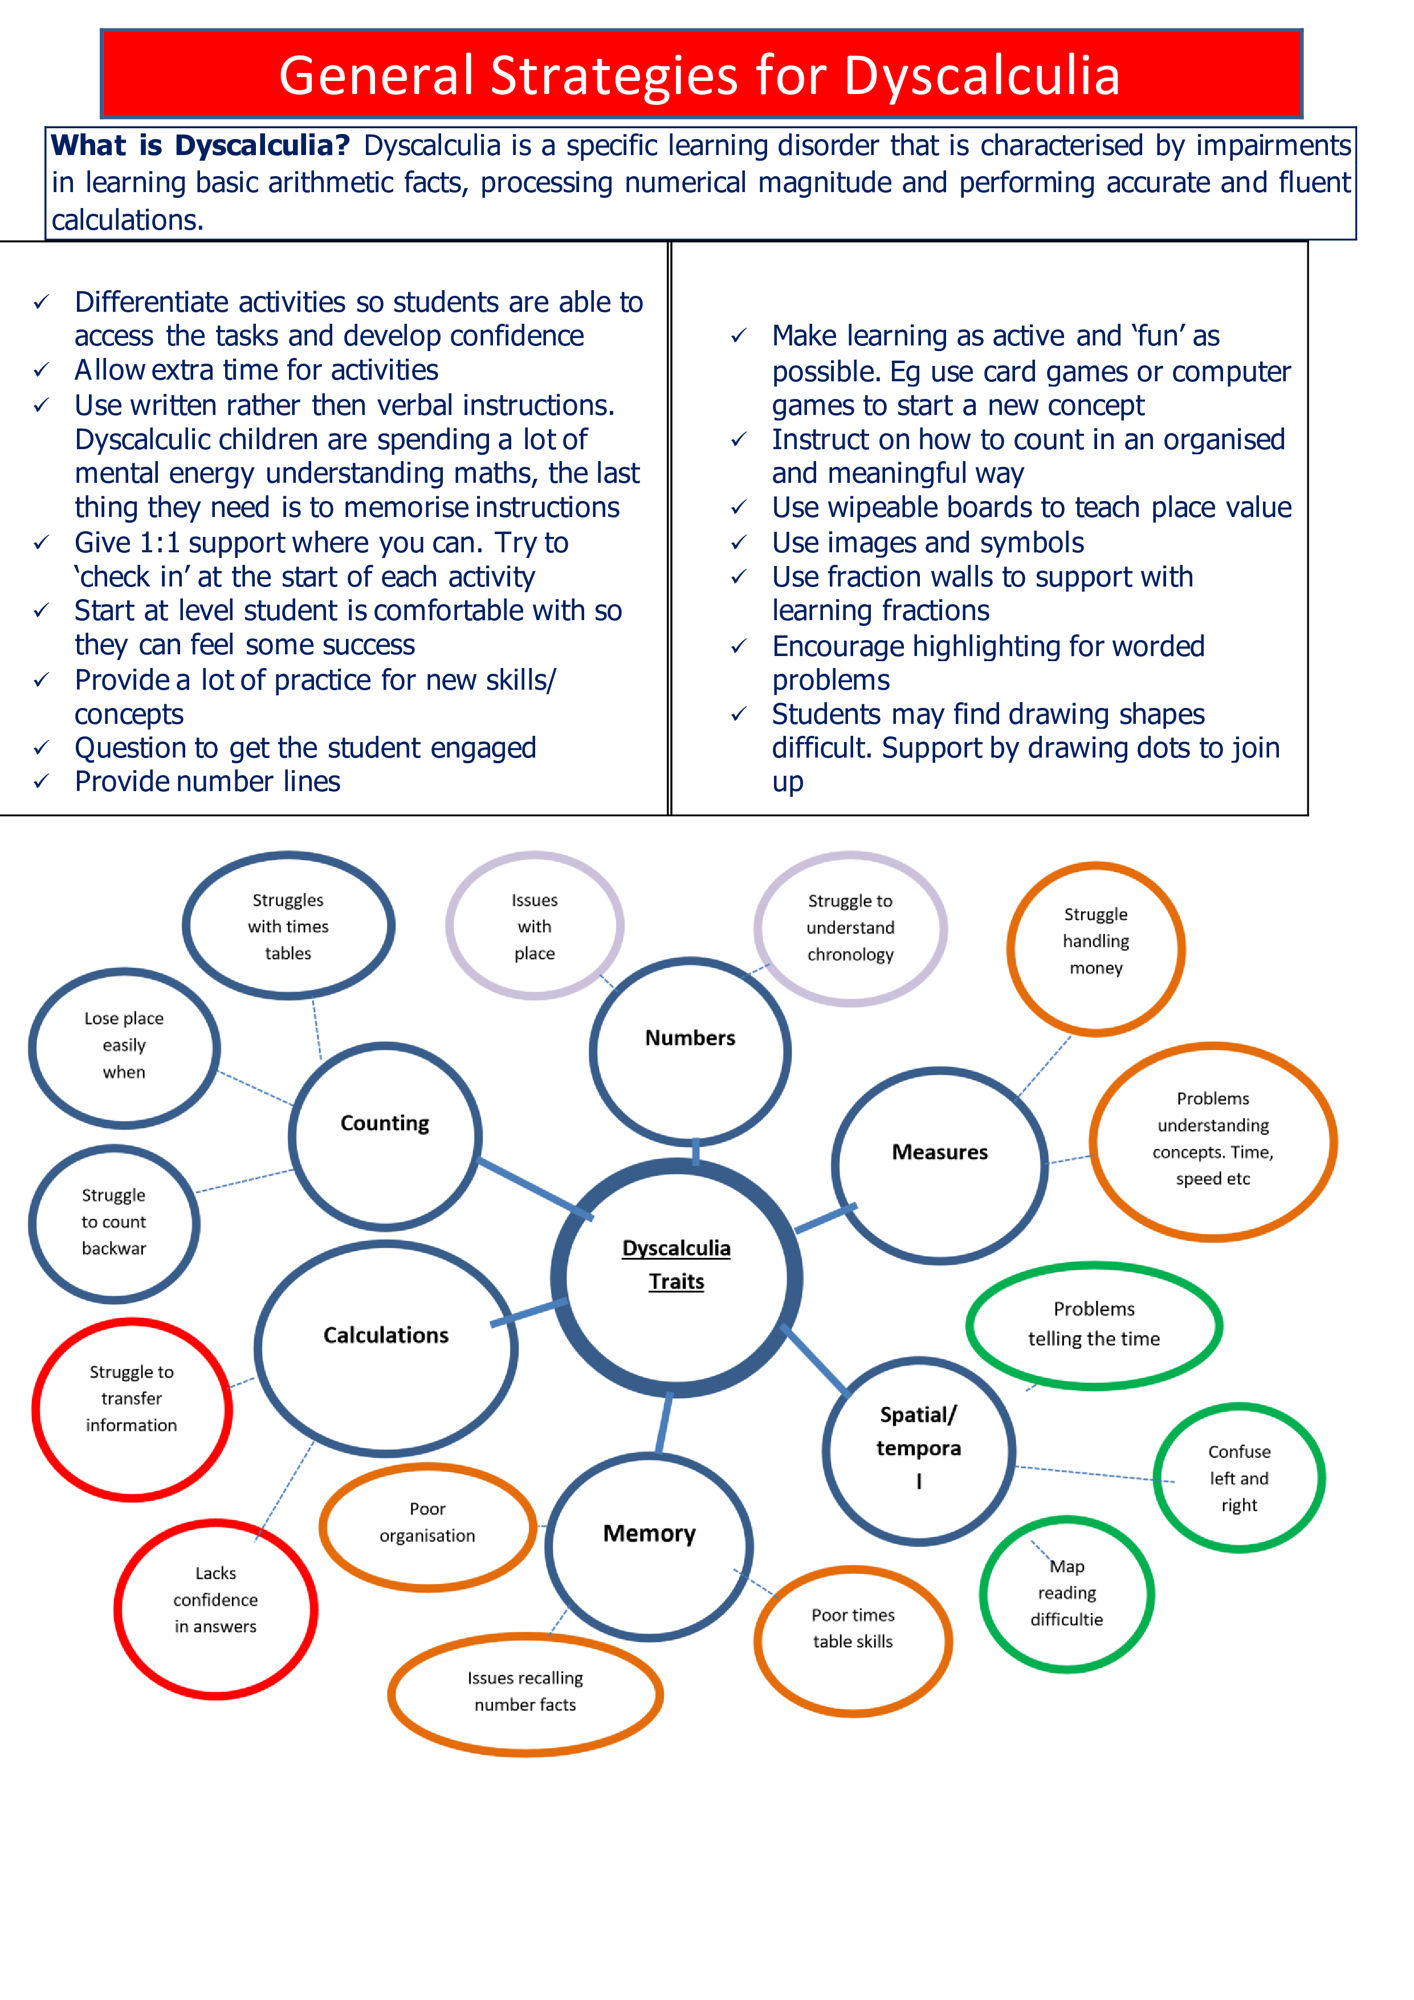 Guide to supporting pupils BPS 0005